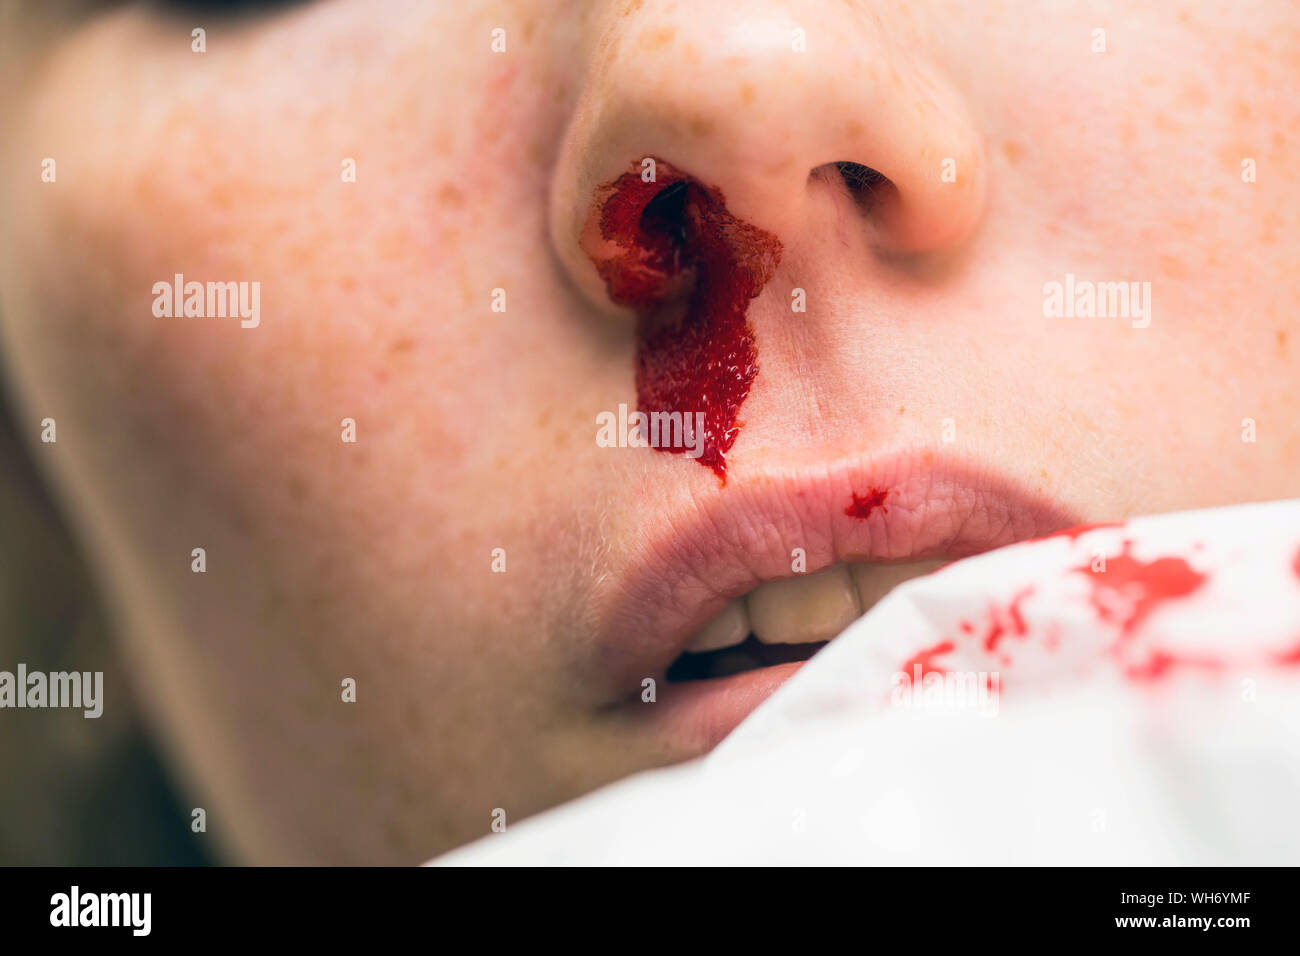 Nose Bandage High Resolution Stock Photography and Images ...